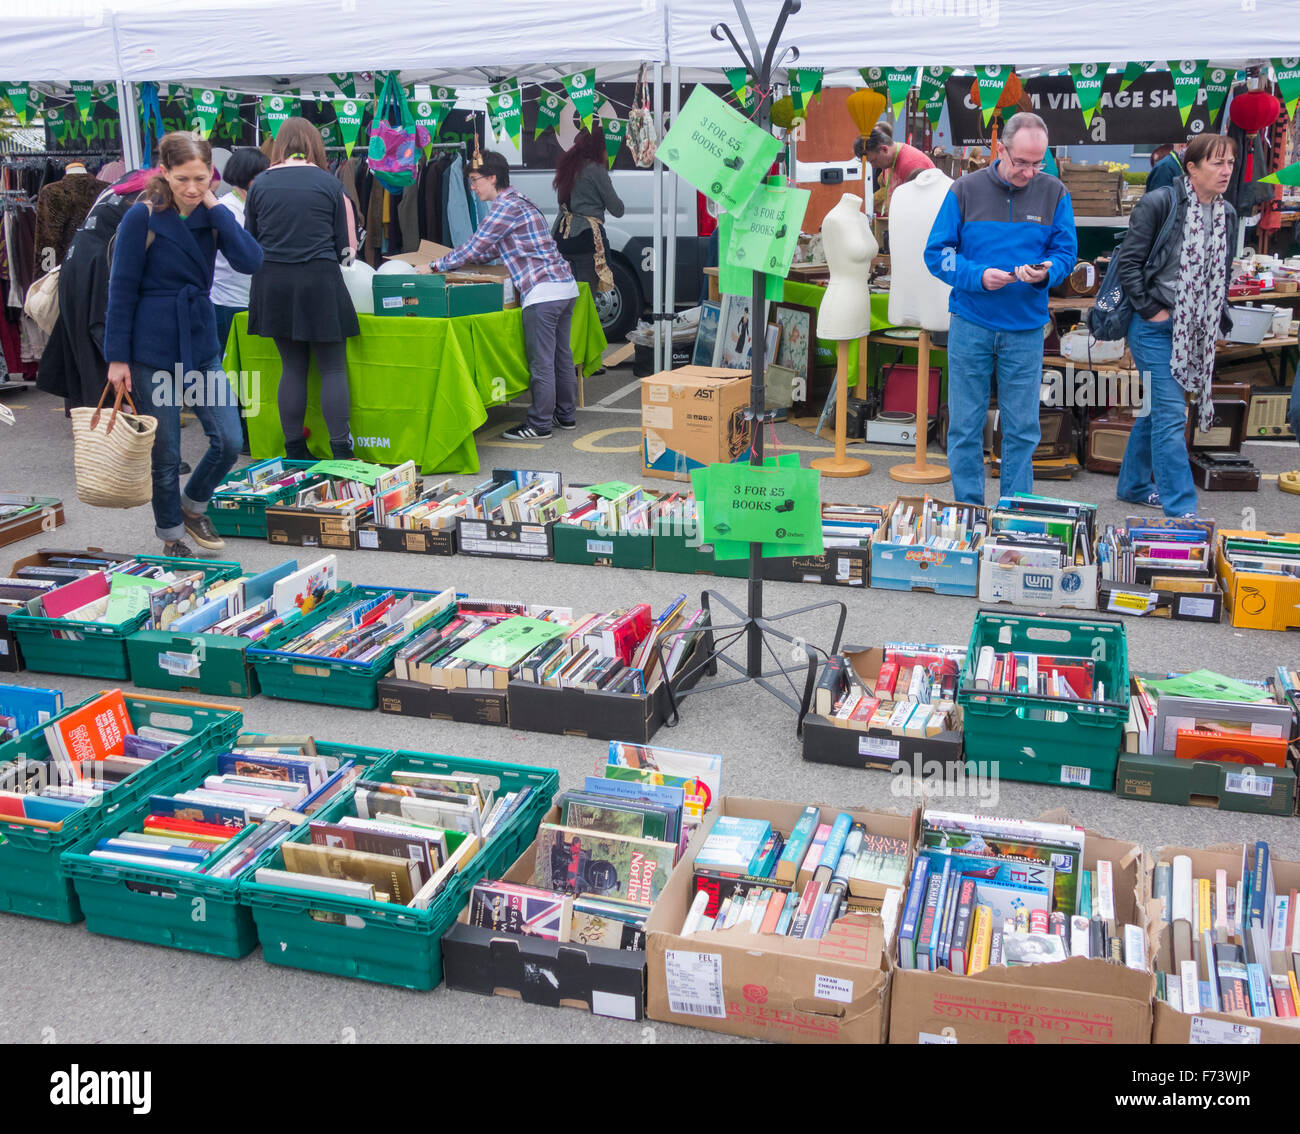 Oxfam stall at Thrift festival at Lingfield Point, Darlington. UK - Stock Image